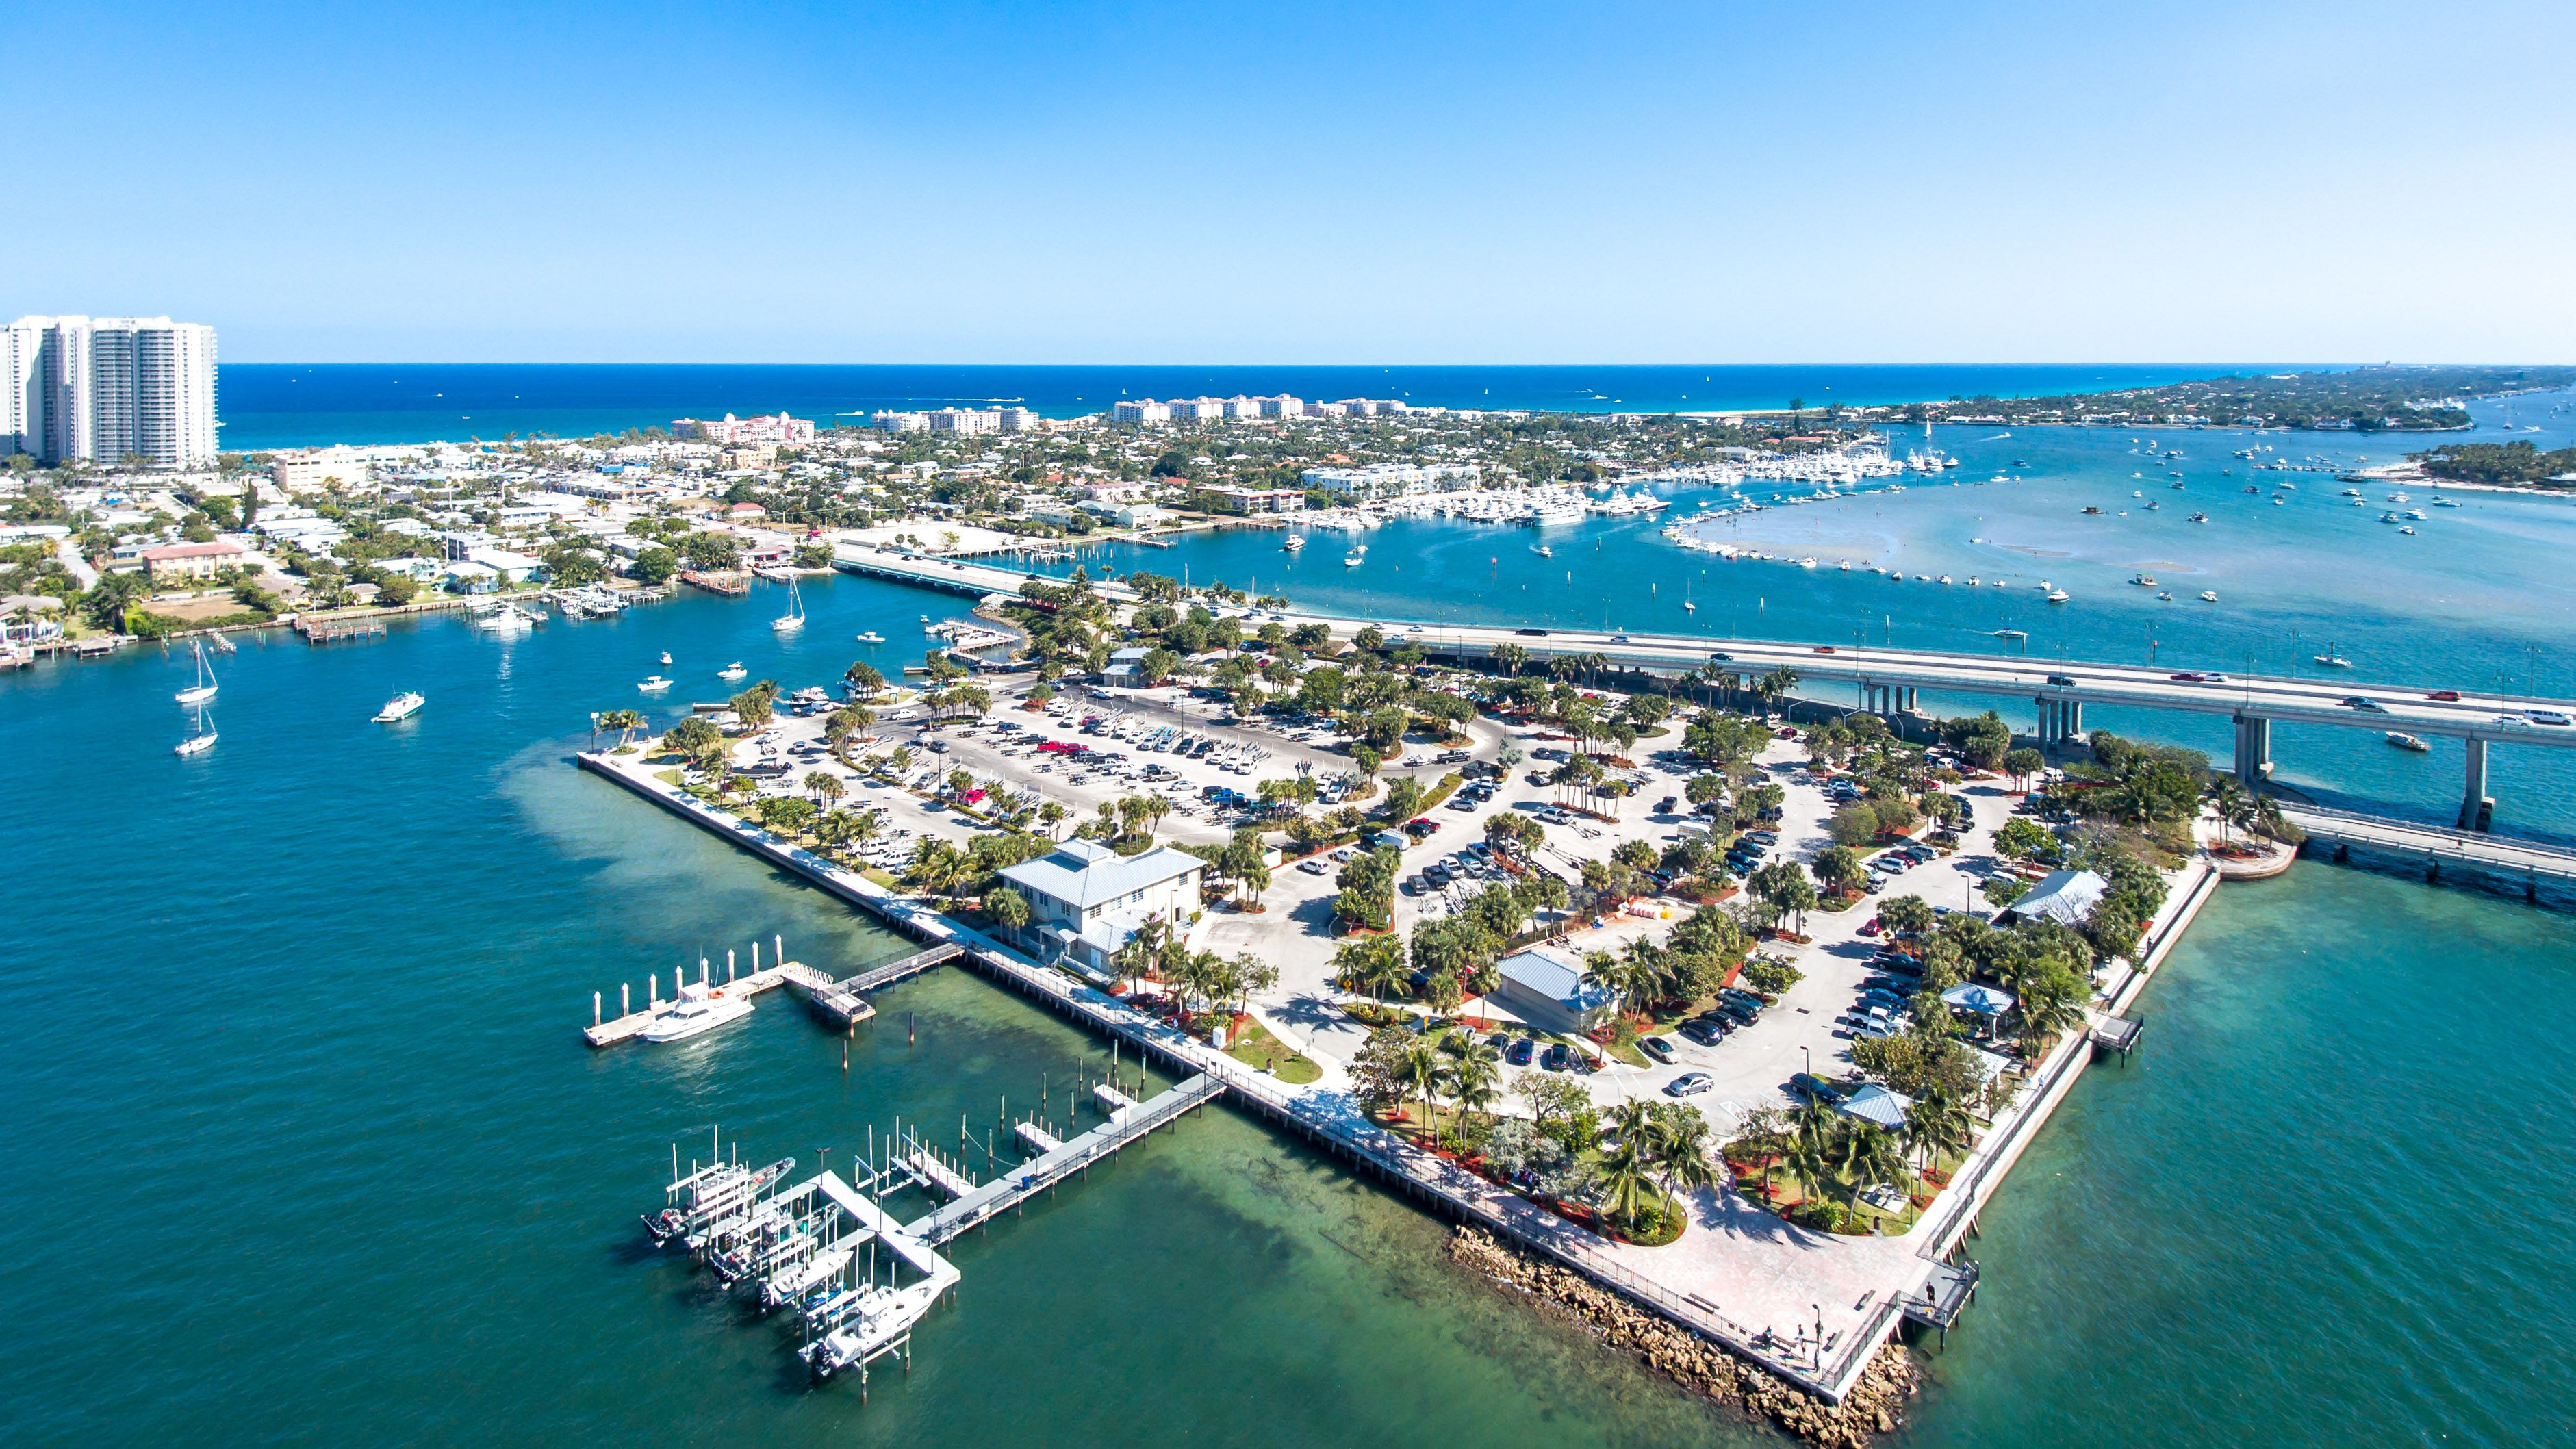 Phil-Foster-Park-Riviera-Beach-Florida-Drone-Photography-3